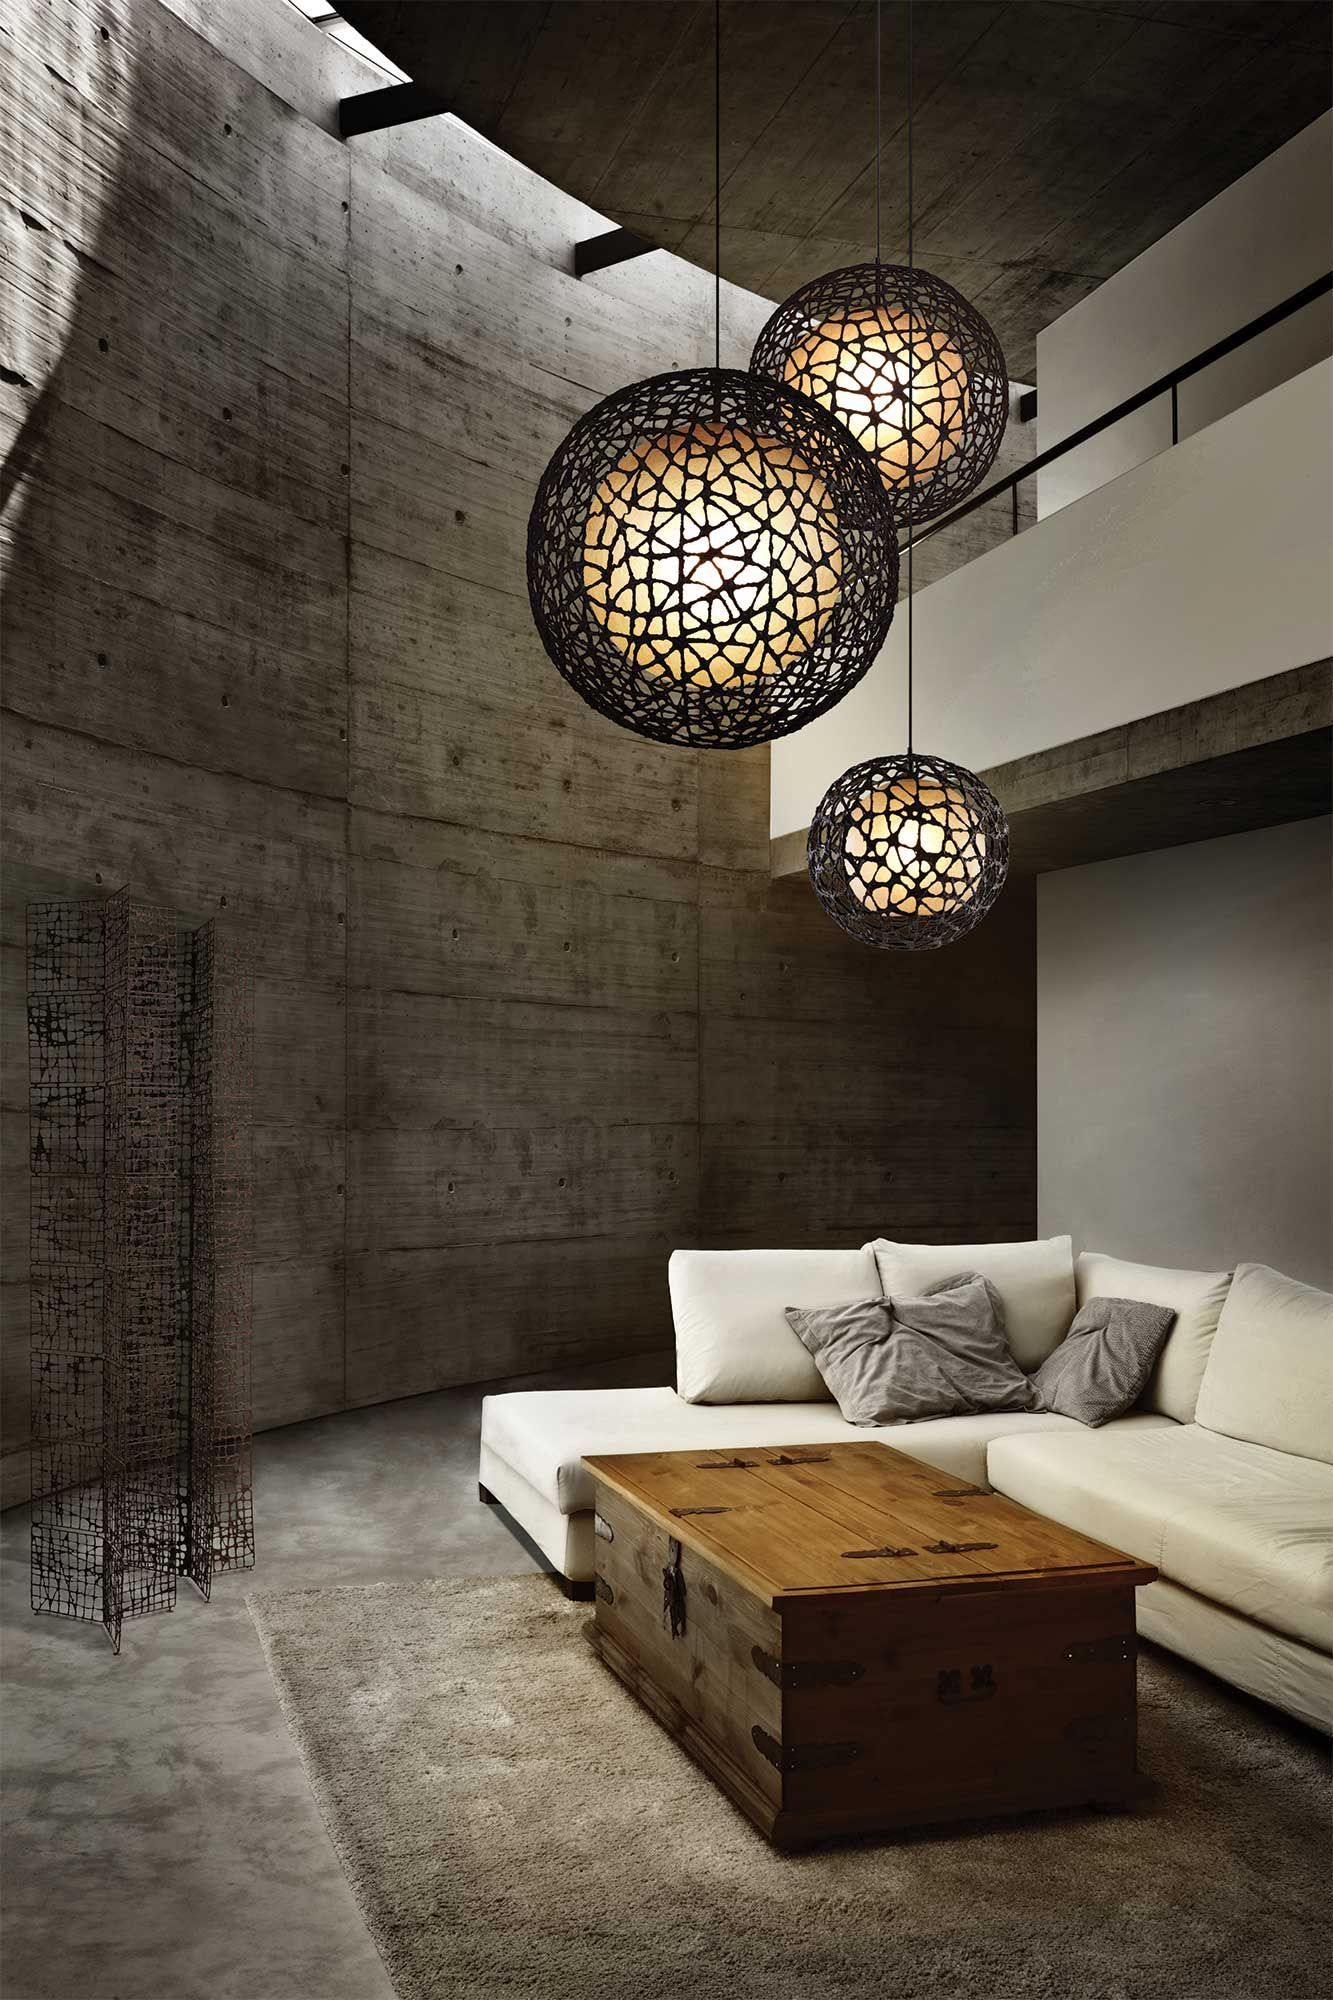 Pin By Npisg On Living Room Ideas Living Room Lighting Home